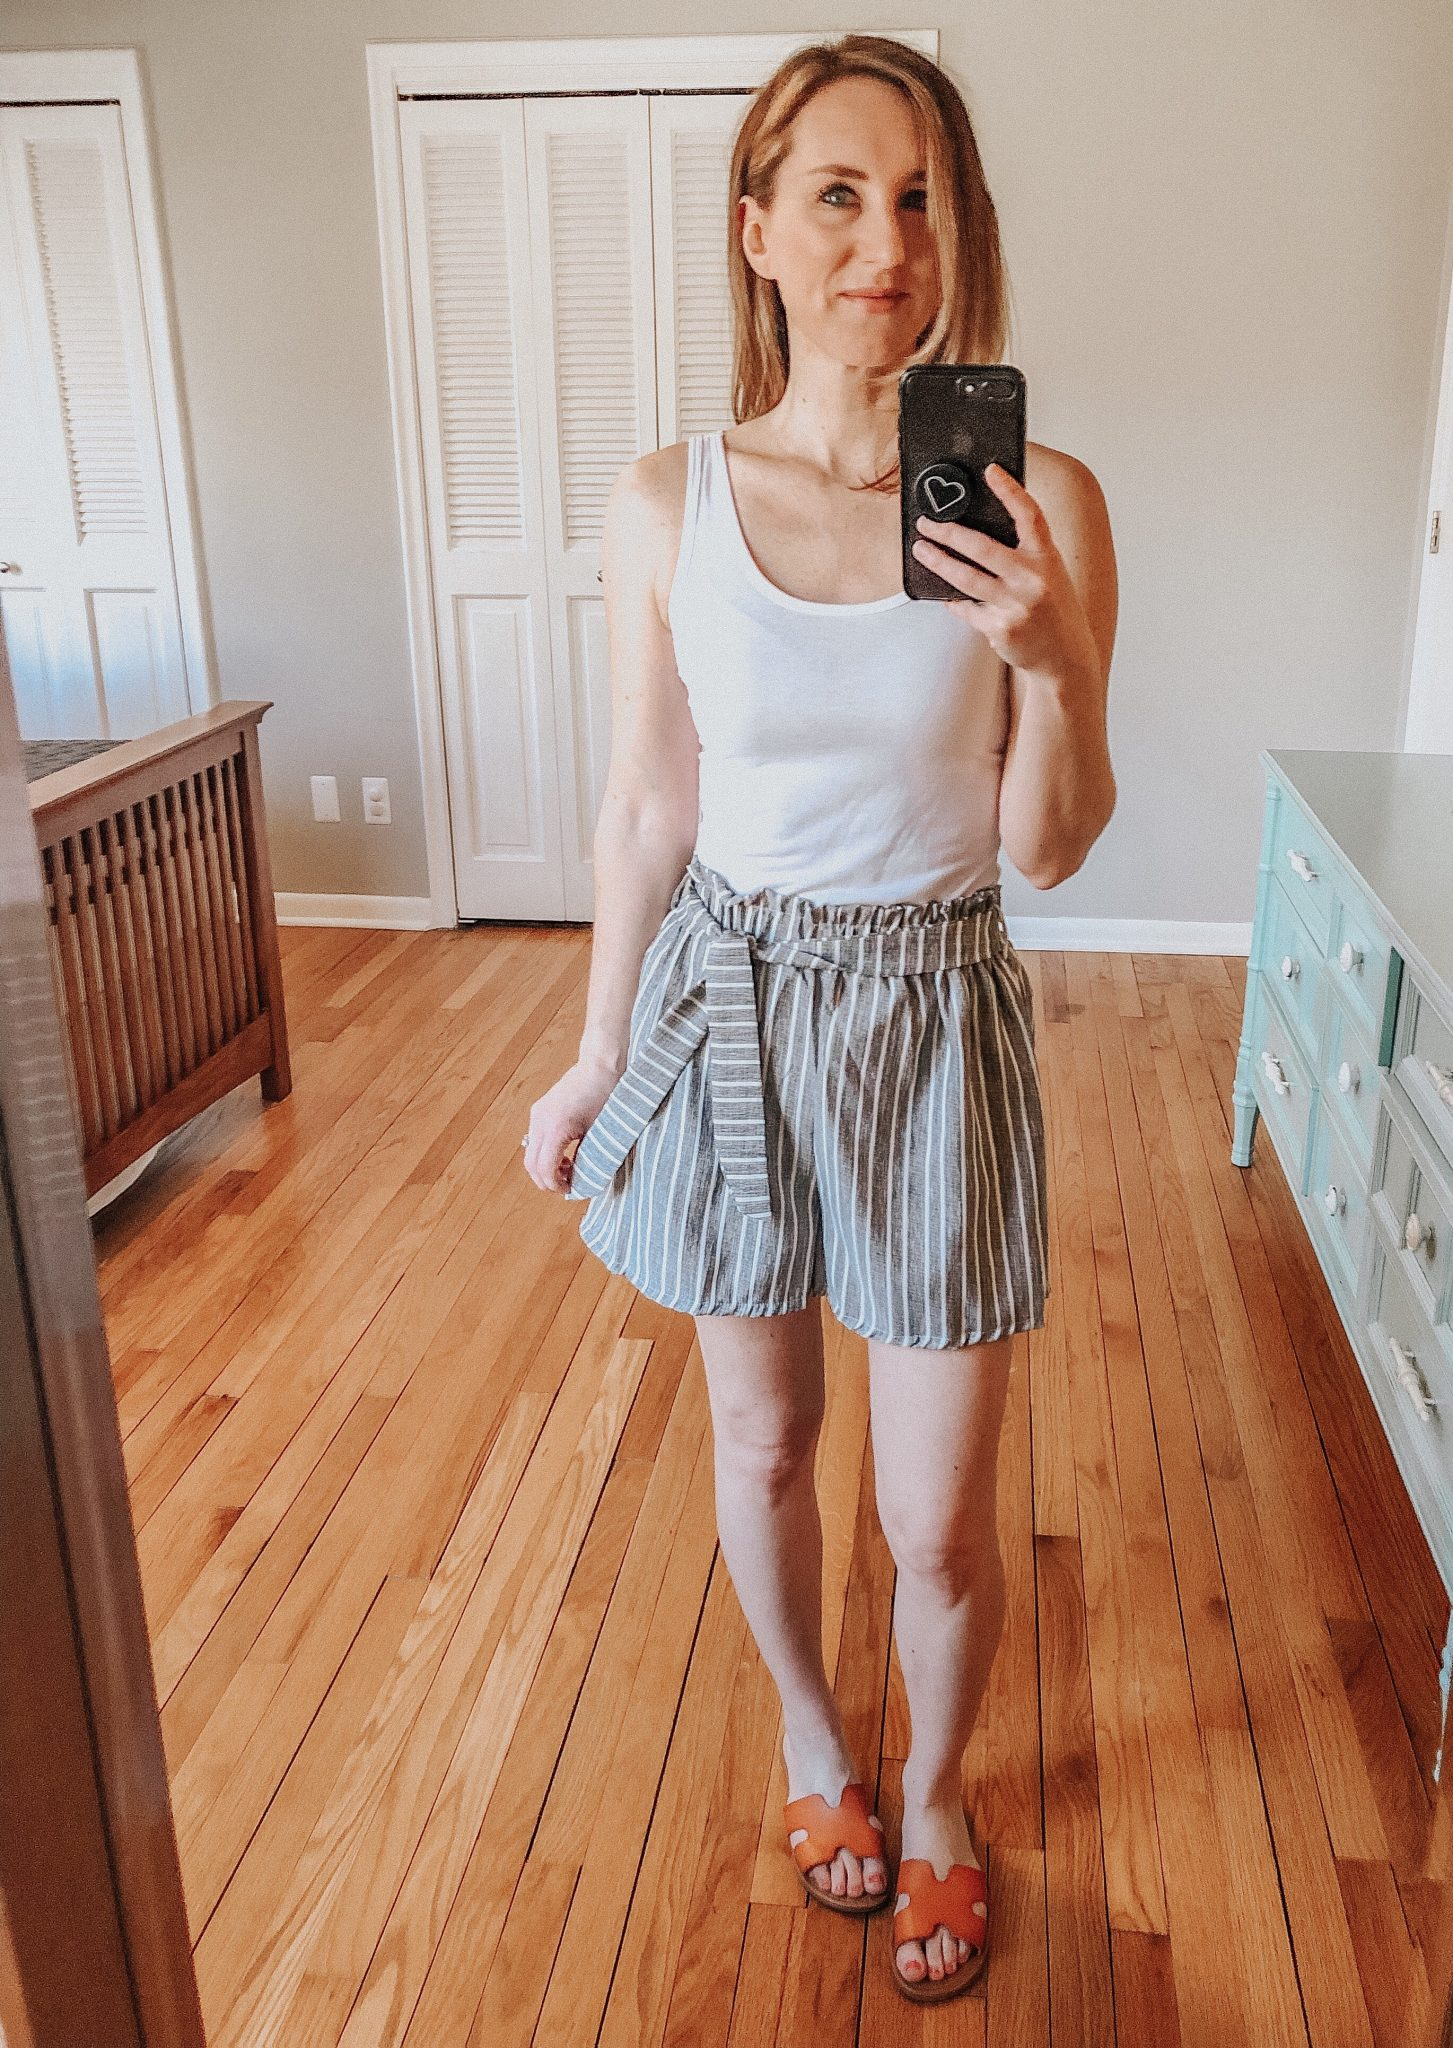 Spring Amazon Haul | Daily Splendor Life and Style Blog || shorts, tanks, sandals, amazon prime, #springstyle #springfashion #summeroutfit #primefind #everydaystyle #momstyle